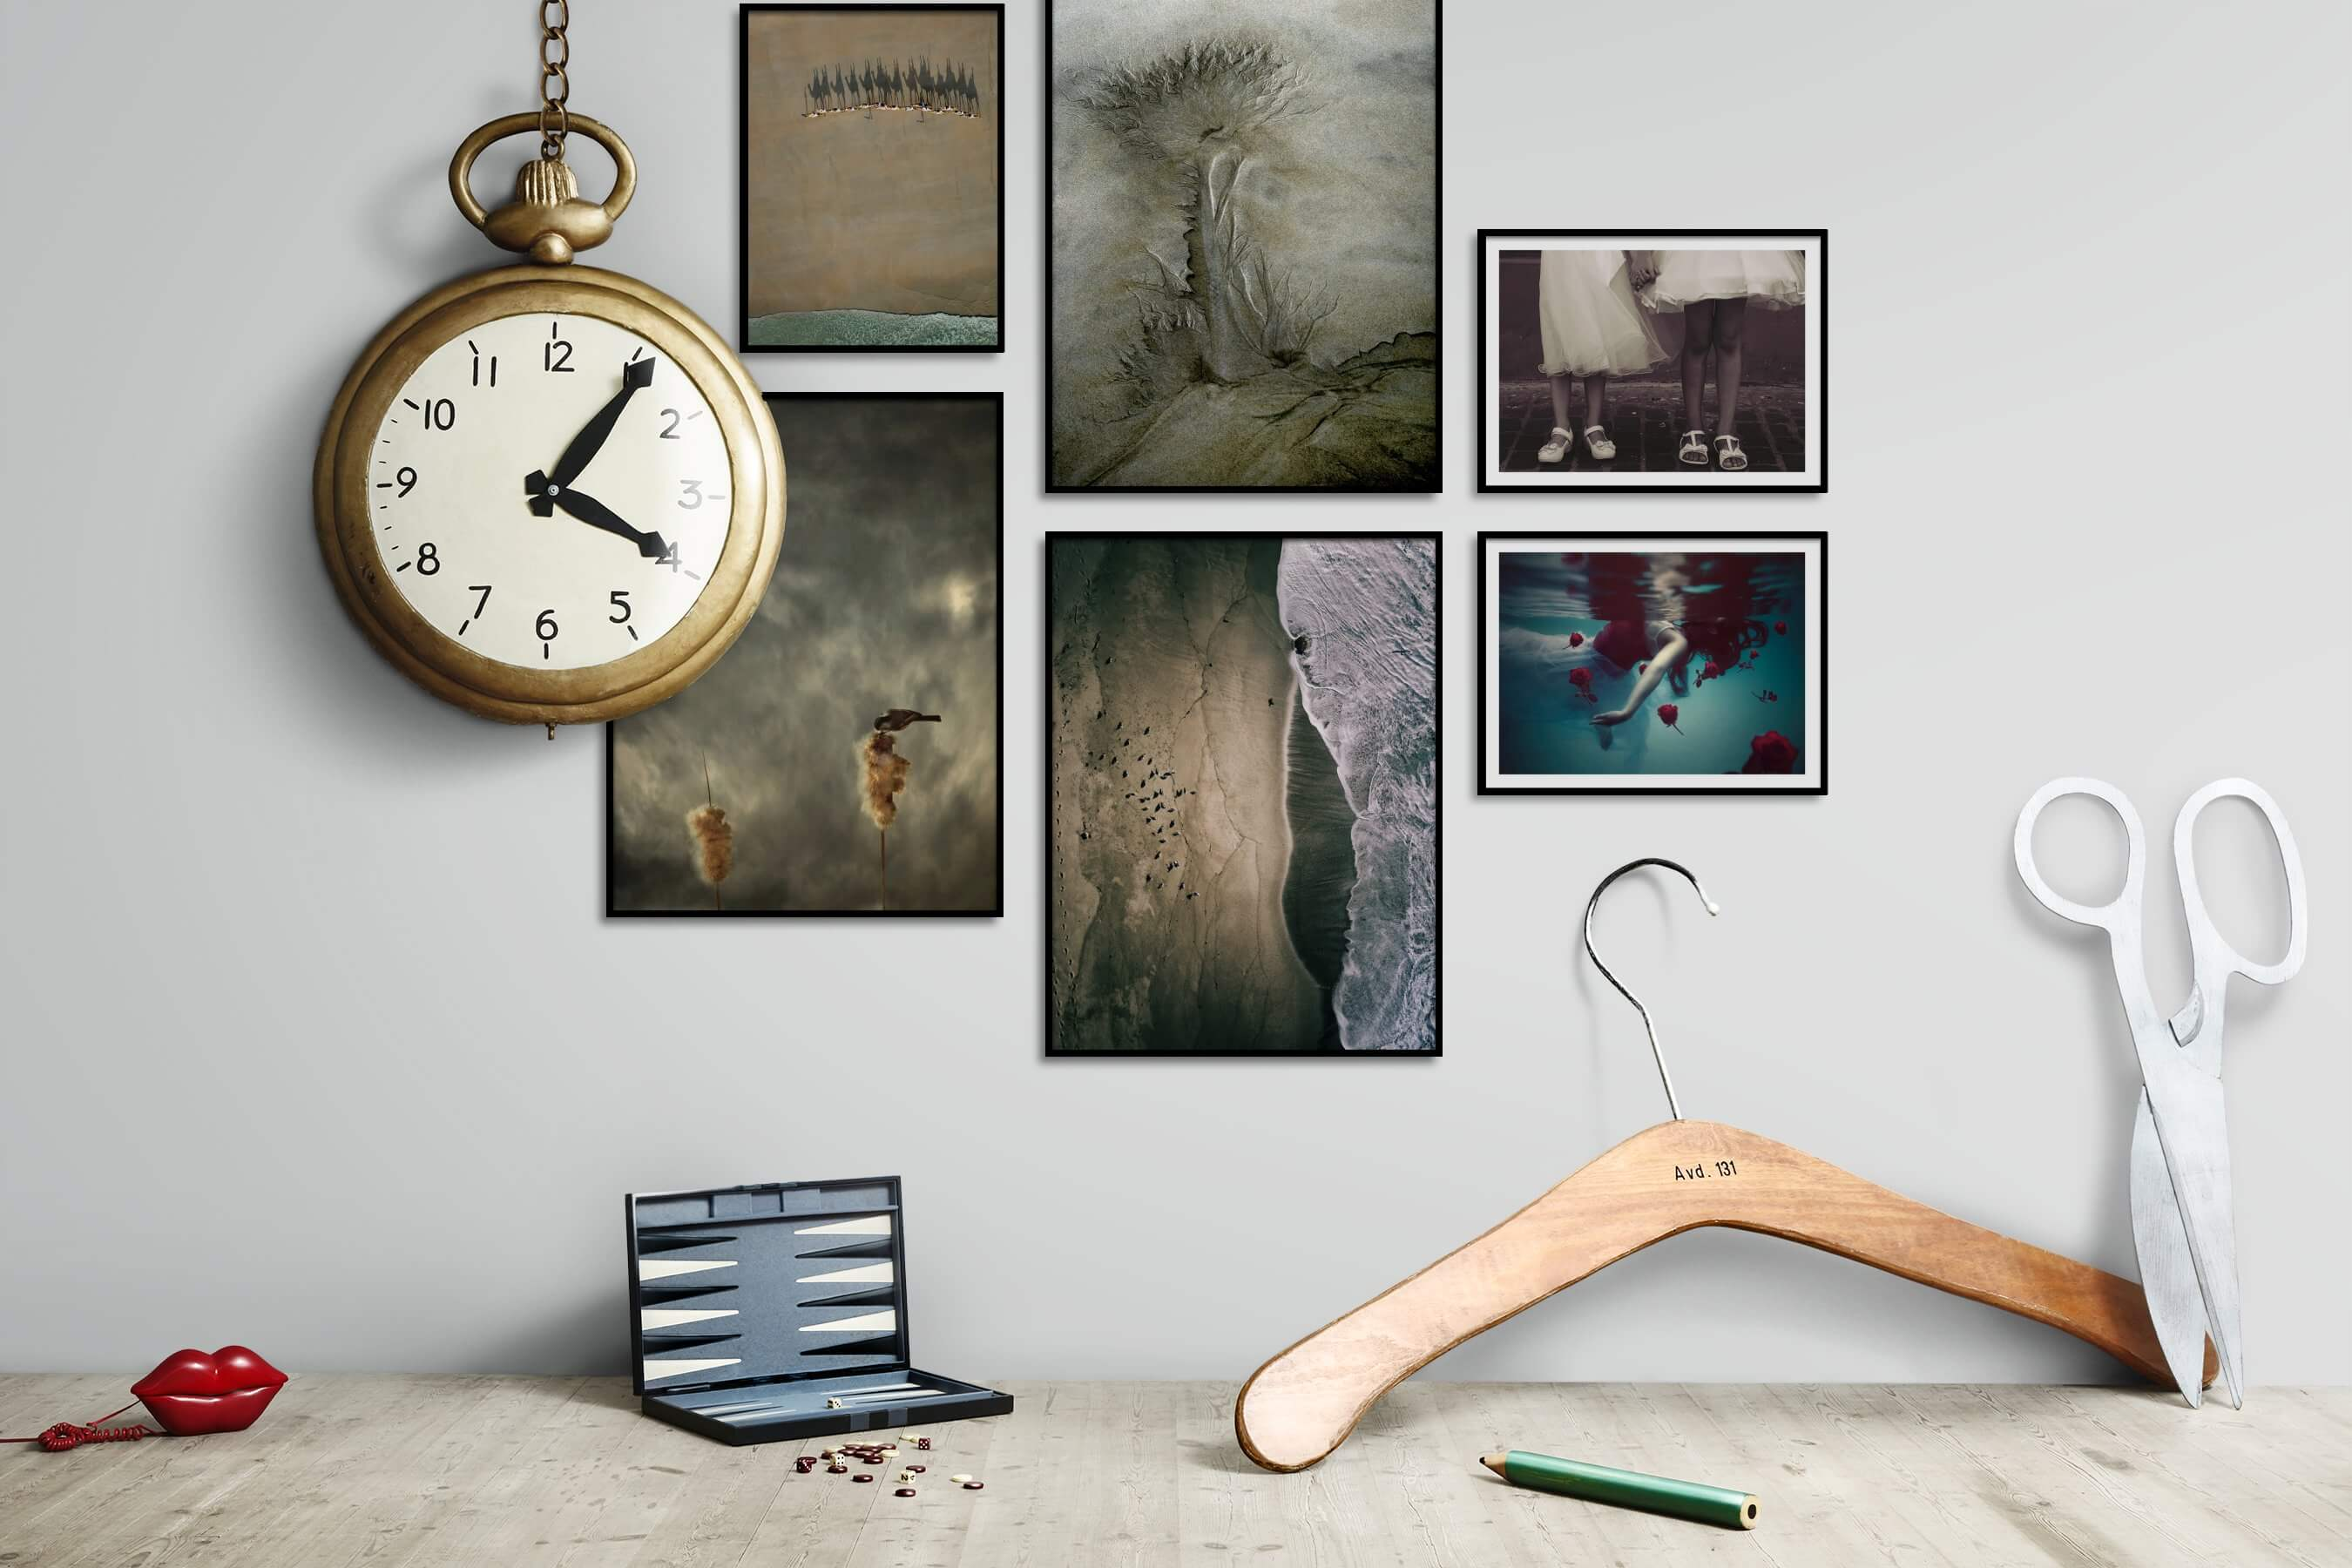 Gallery wall idea with six framed pictures arranged on a wall depicting For the Minimalist, Animals, Beach & Water, Nature, For the Moderate, Fashion & Beauty, and Flowers & Plants